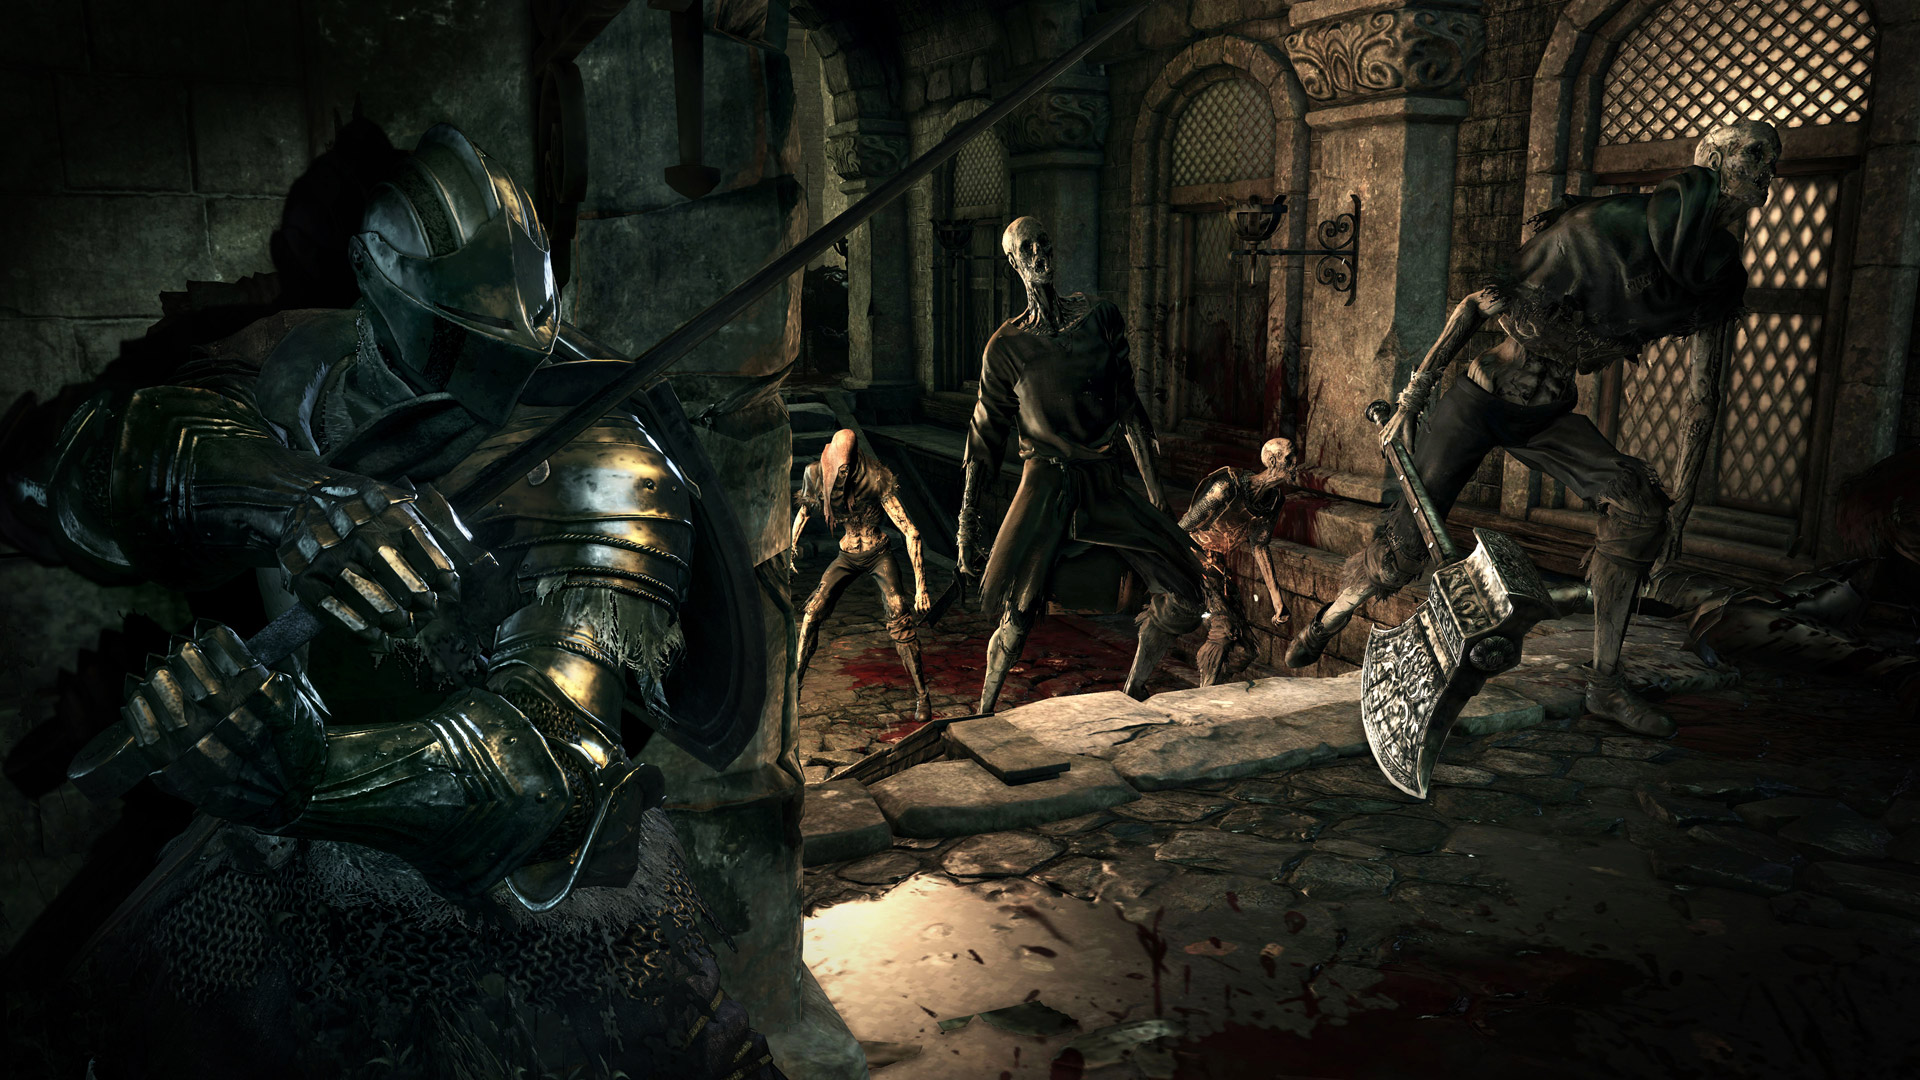 Hidetaka Miyazaki on Dark Souls 3's changes to bosses, magic, combat and more